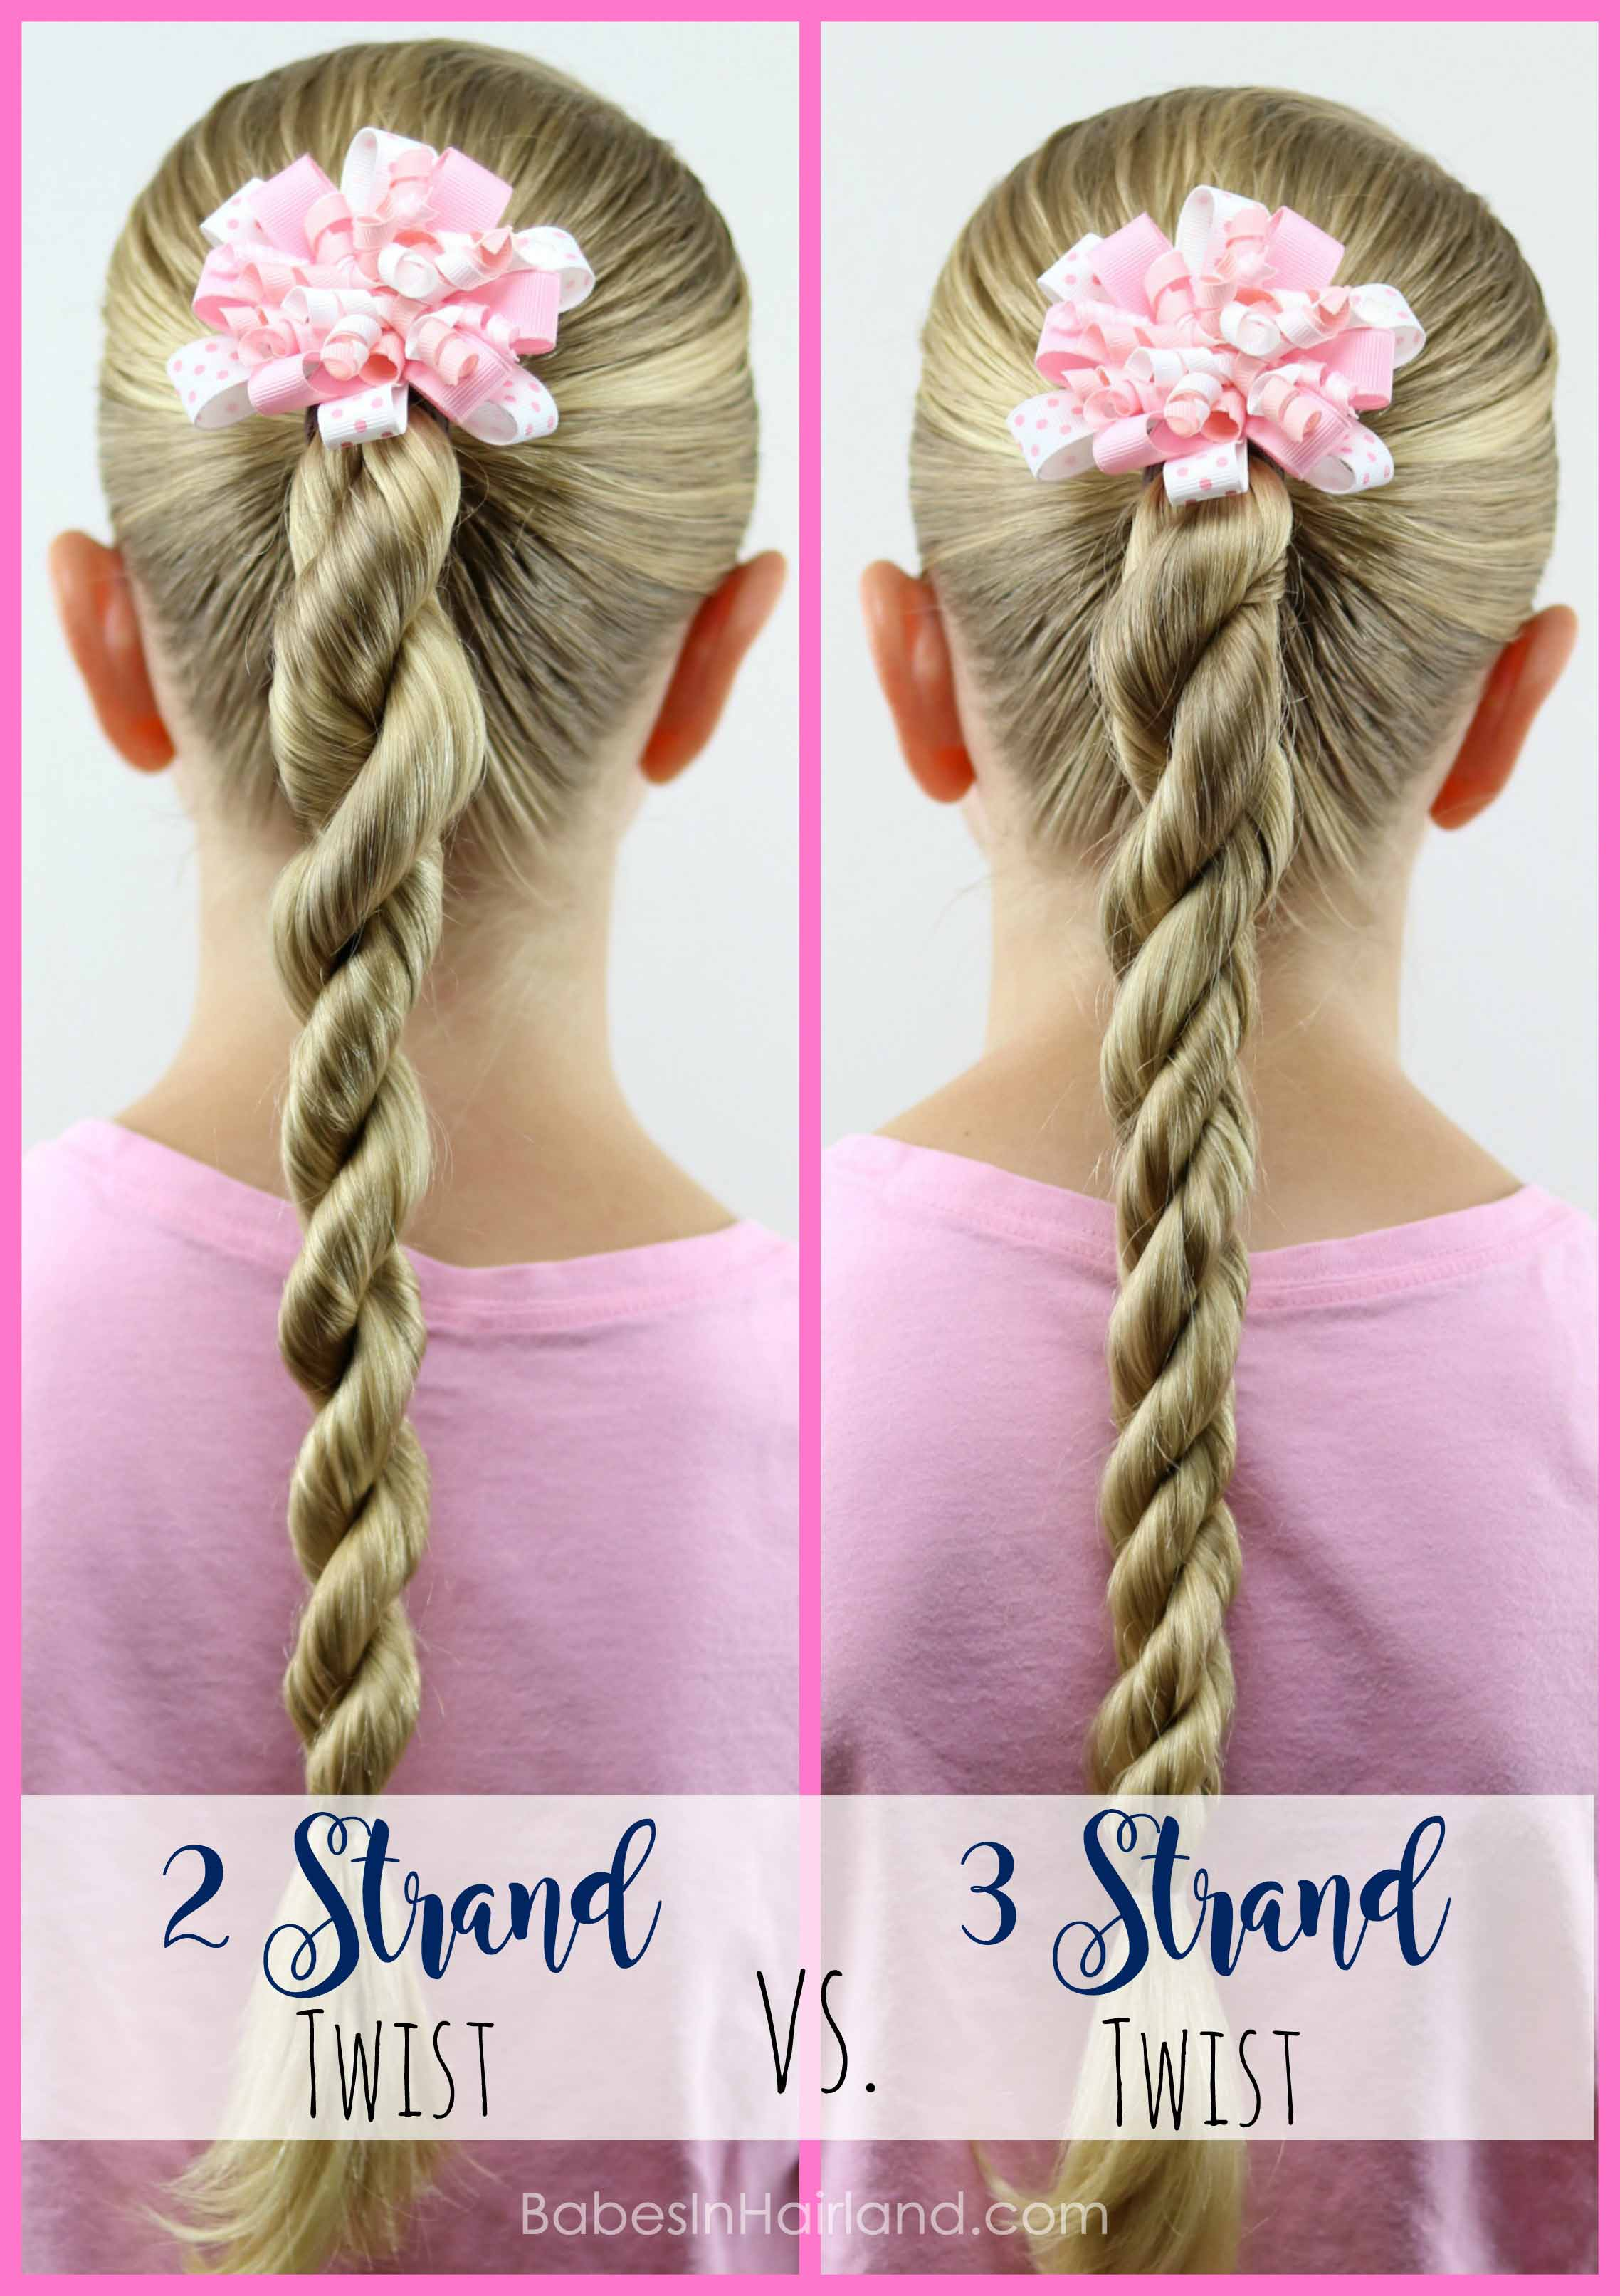 I Think The 3 Strand Twist Is Cooler Looking Personally Even If Get My 2 Twists Extremely Tight They Dont Look As Good